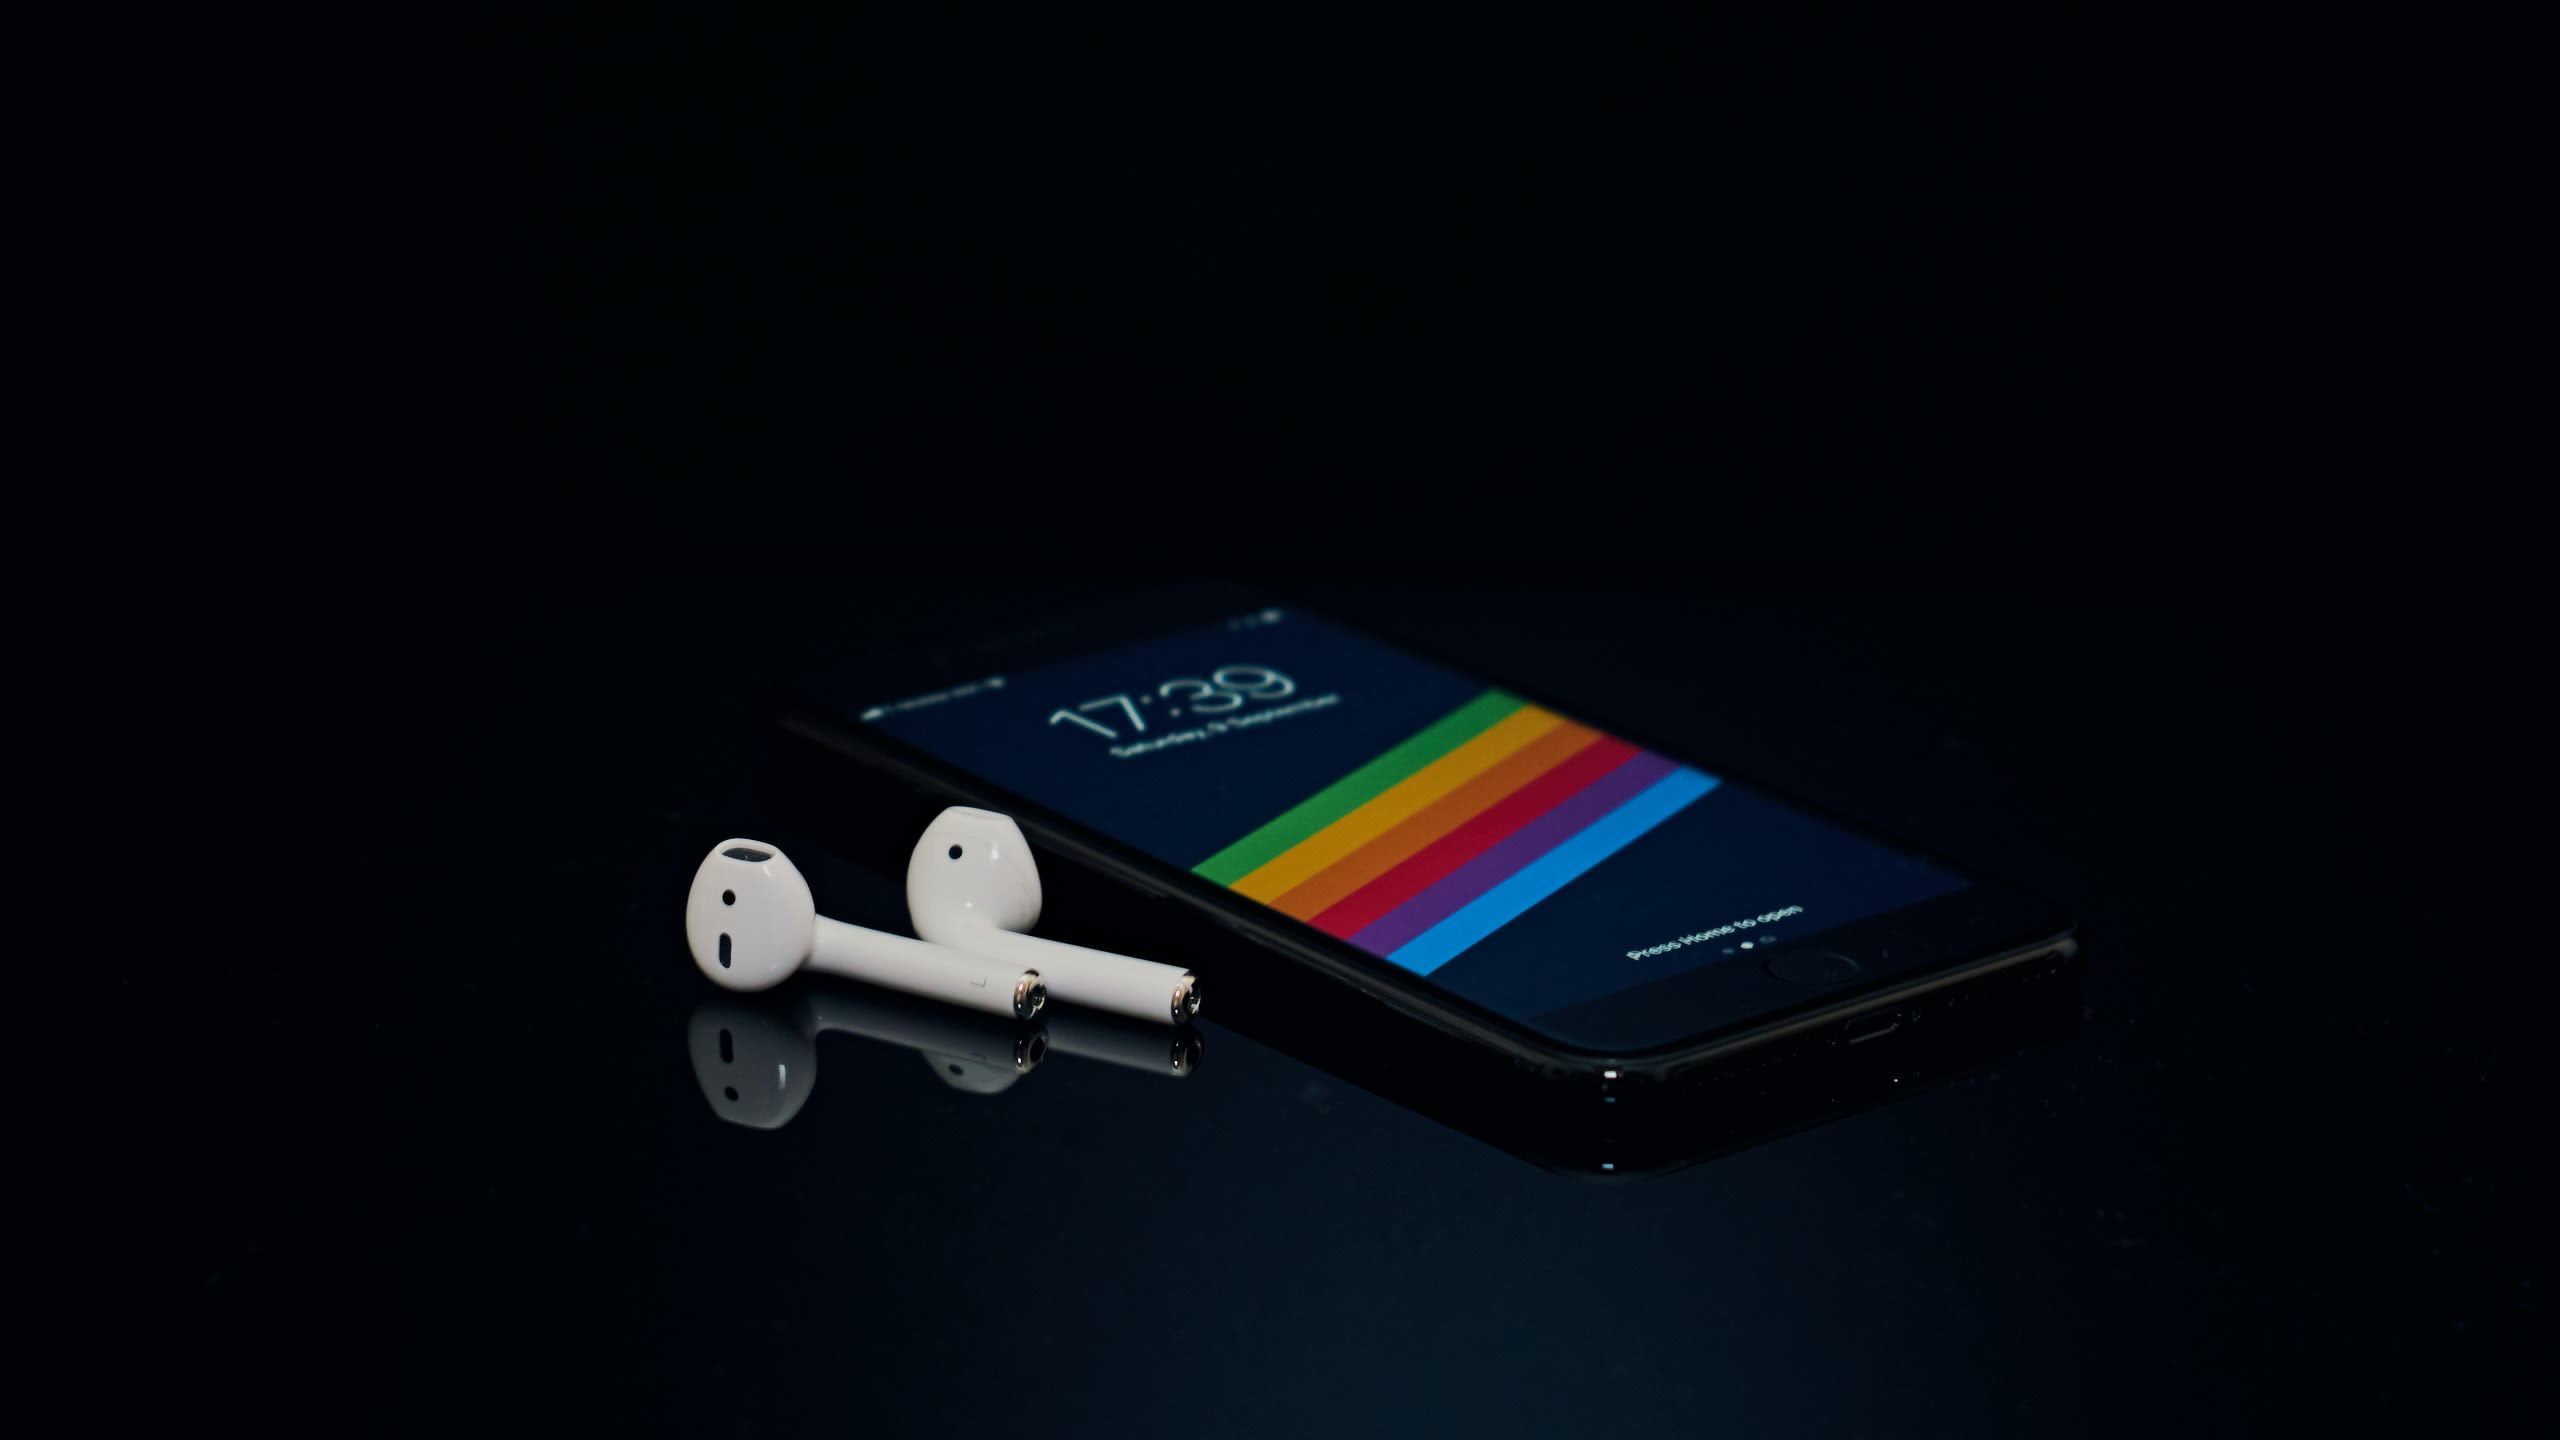 airpods-future-upgrade-could-improve-iphone-battery-life-20200825-2